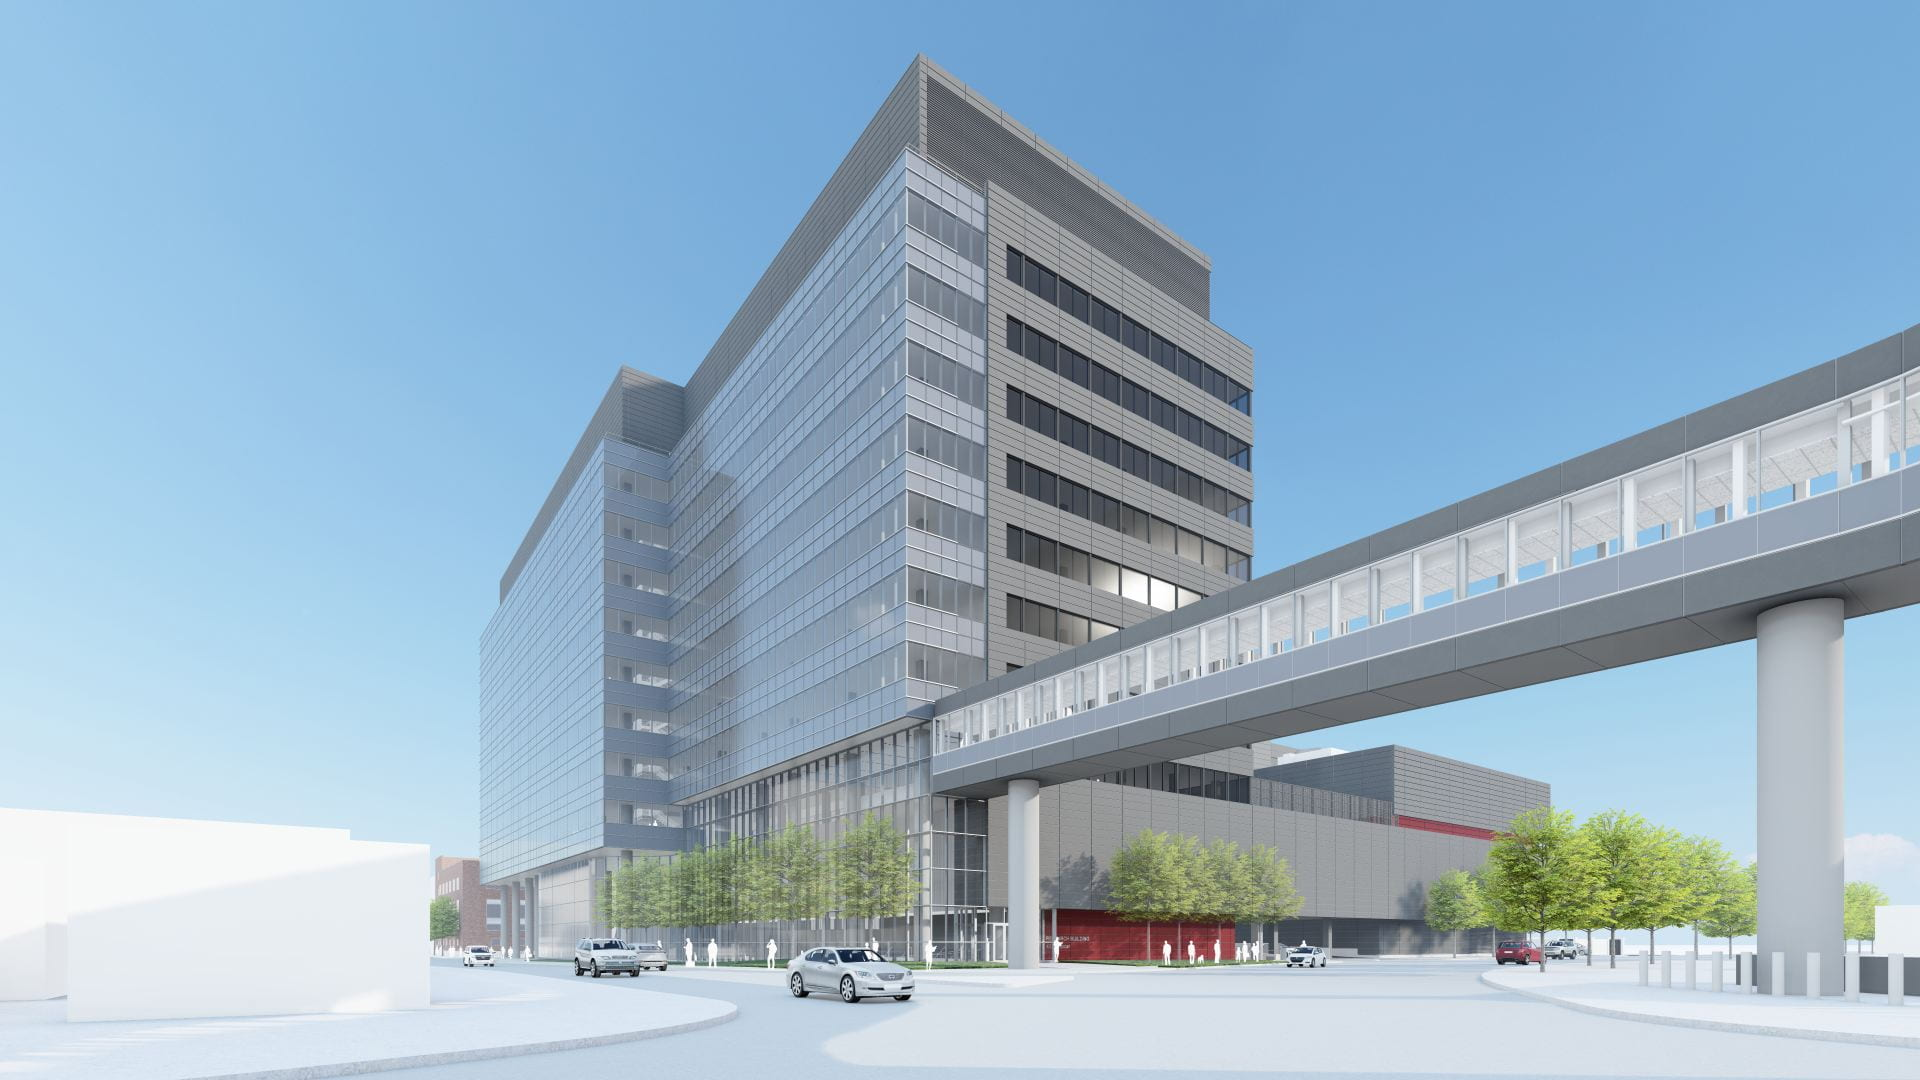 WUSM Planning & Projects: Neuroscience Research Building